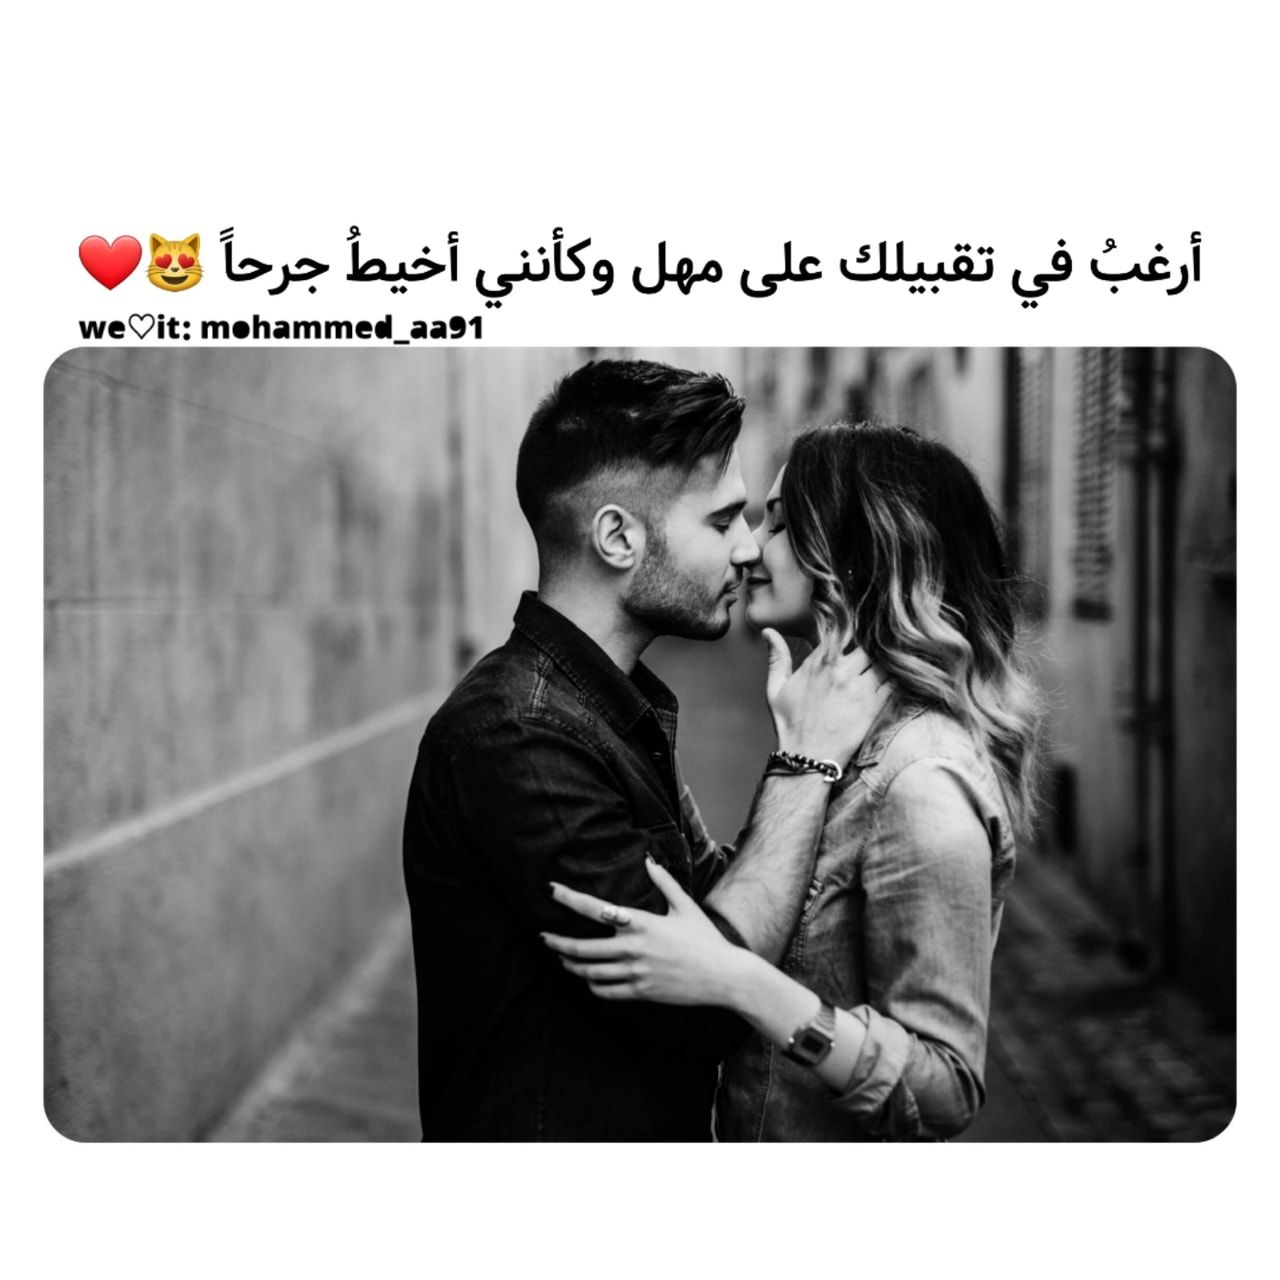 Uploaded By Msnammye Find Images And Videos About ابيض واسود حب عشق غرام غزل And بوسة بوس قبلة قبلات On We Heart Short Quotes Love Romantic Words Weird Words